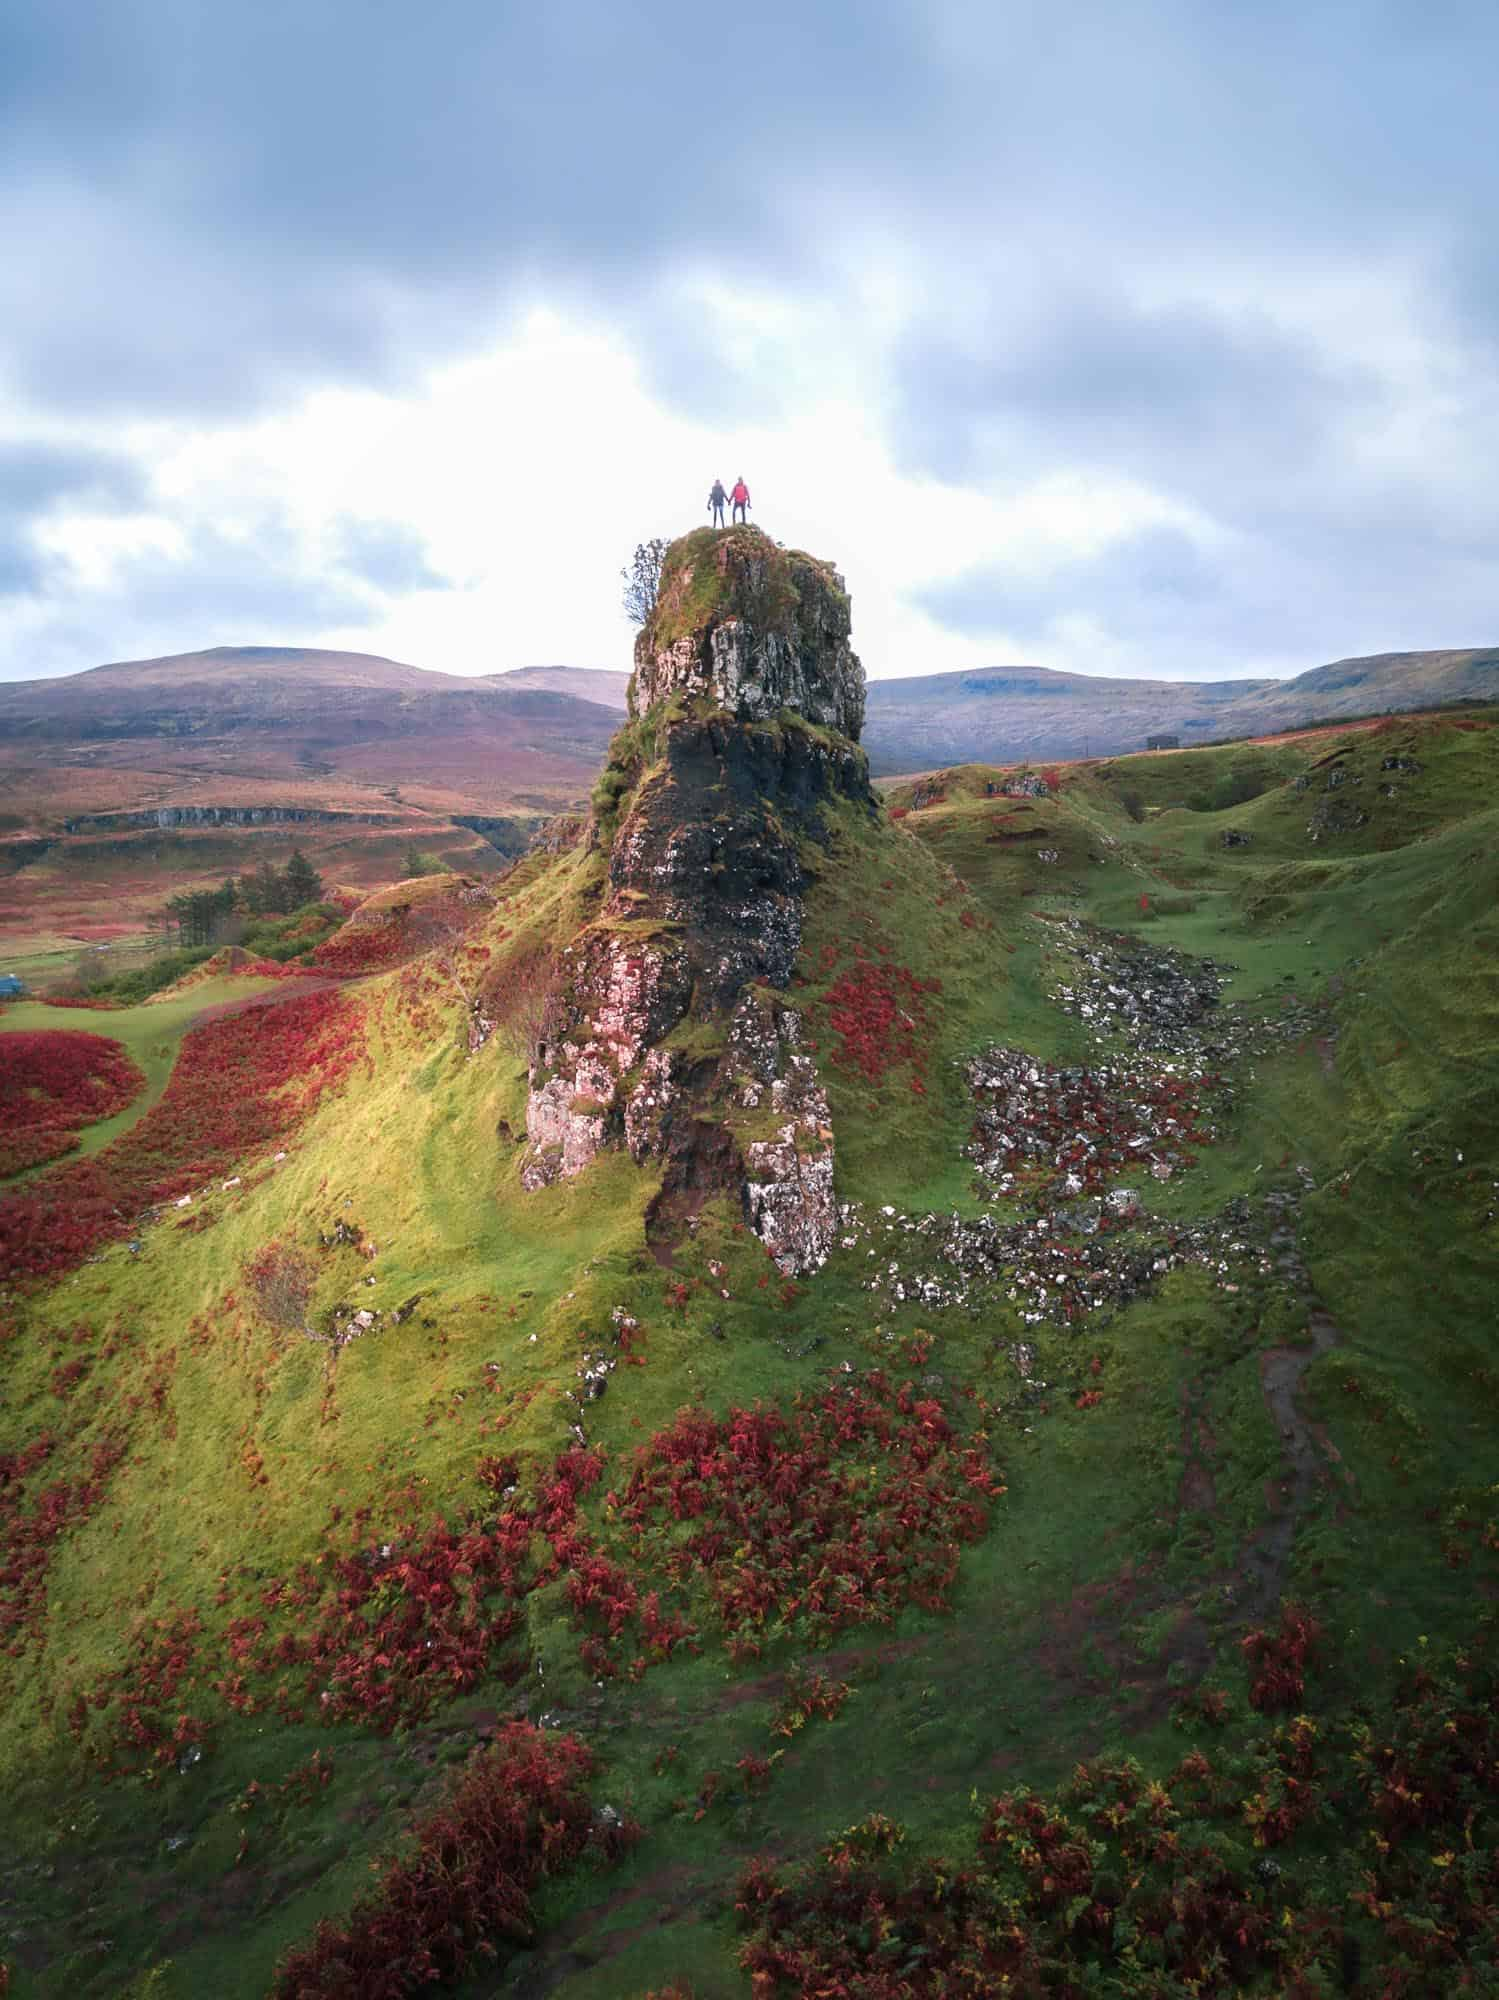 Day 2 on the Isle of Skye two day tour from Edinburgh includes a stop at the amazing Castle Ewan at Fairy Glen.